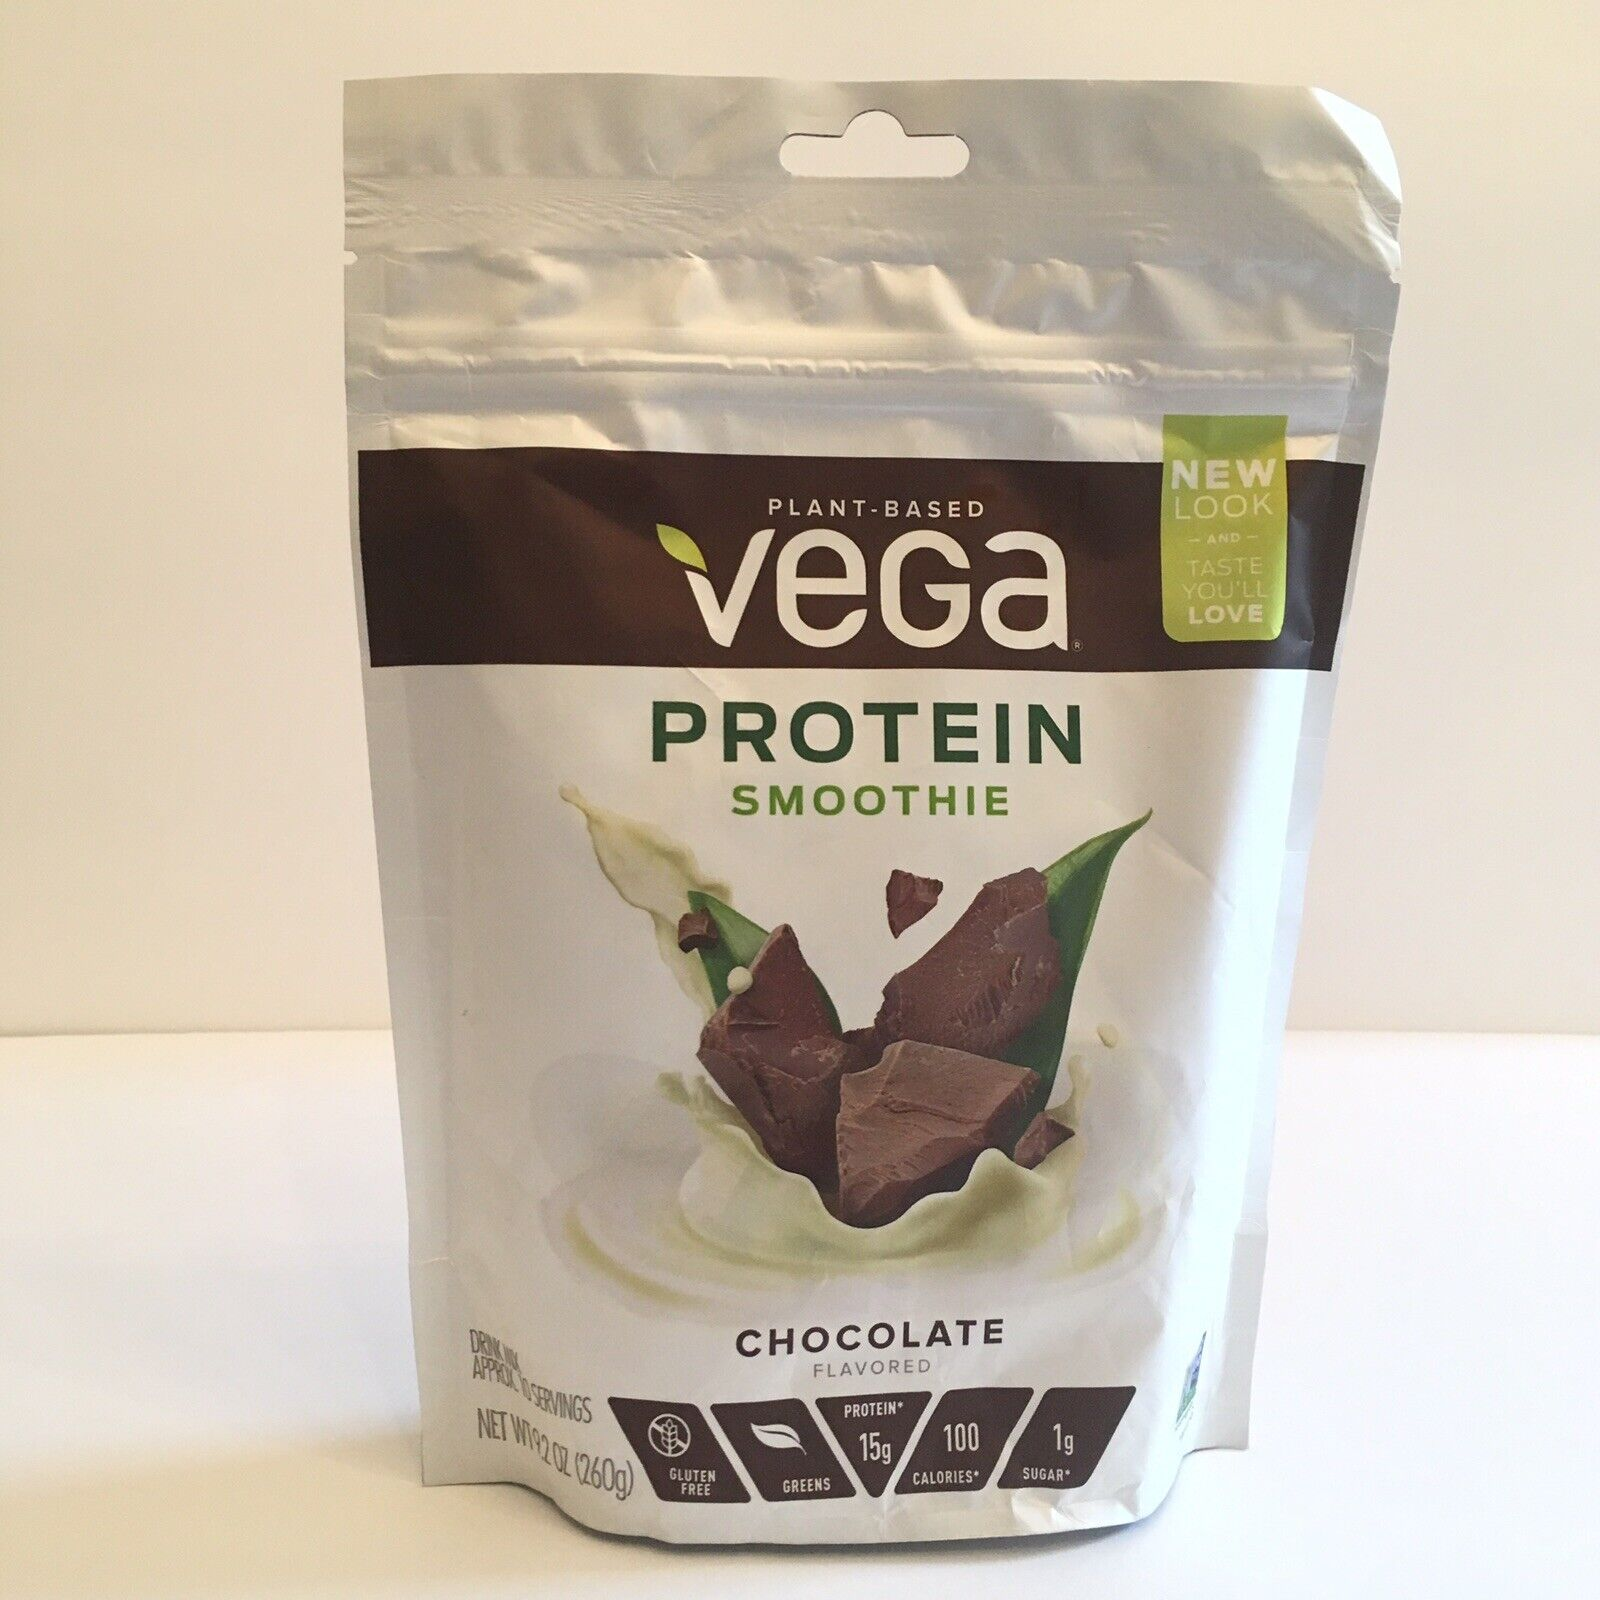 Vega Protein Smoothie, Chocolate, 10 Servings, 9.2 oz Pouch,